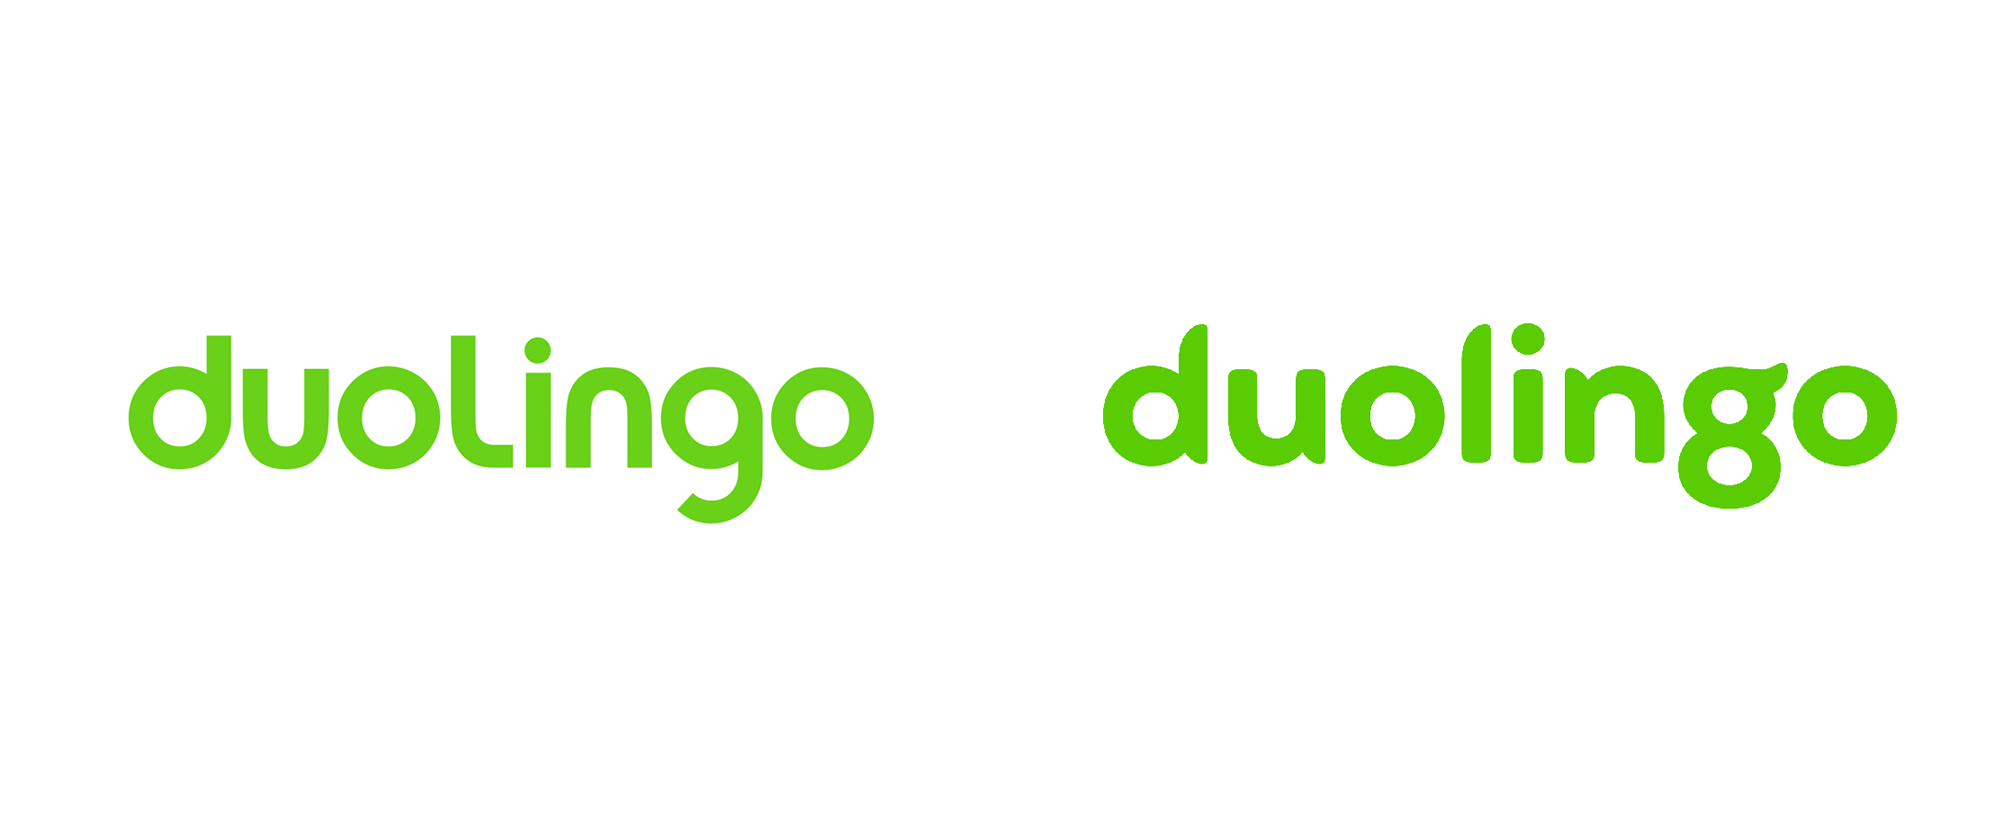 Brand New: New Wordmark and Identity for Duolingo by Johnson.